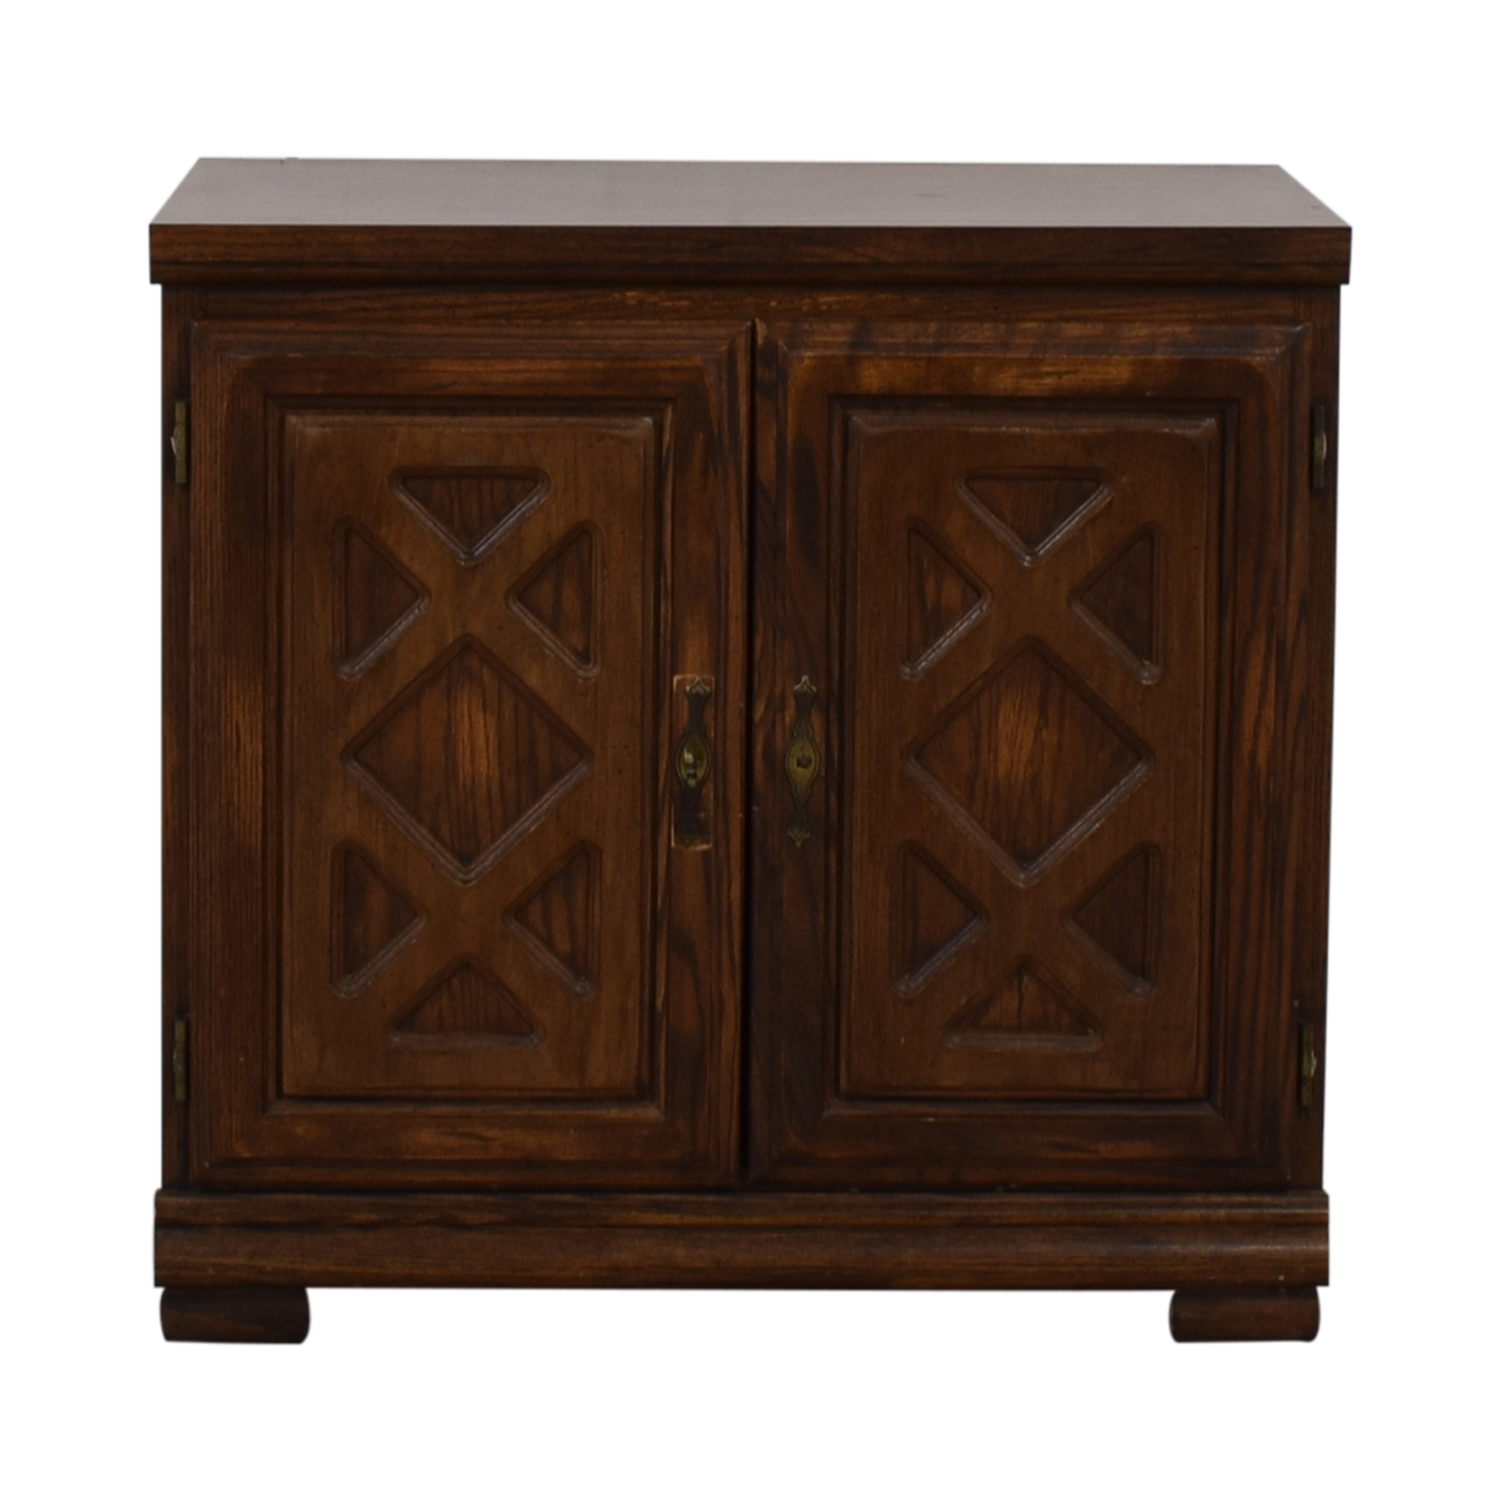 buy  Carved Wood Chest with Shelves online